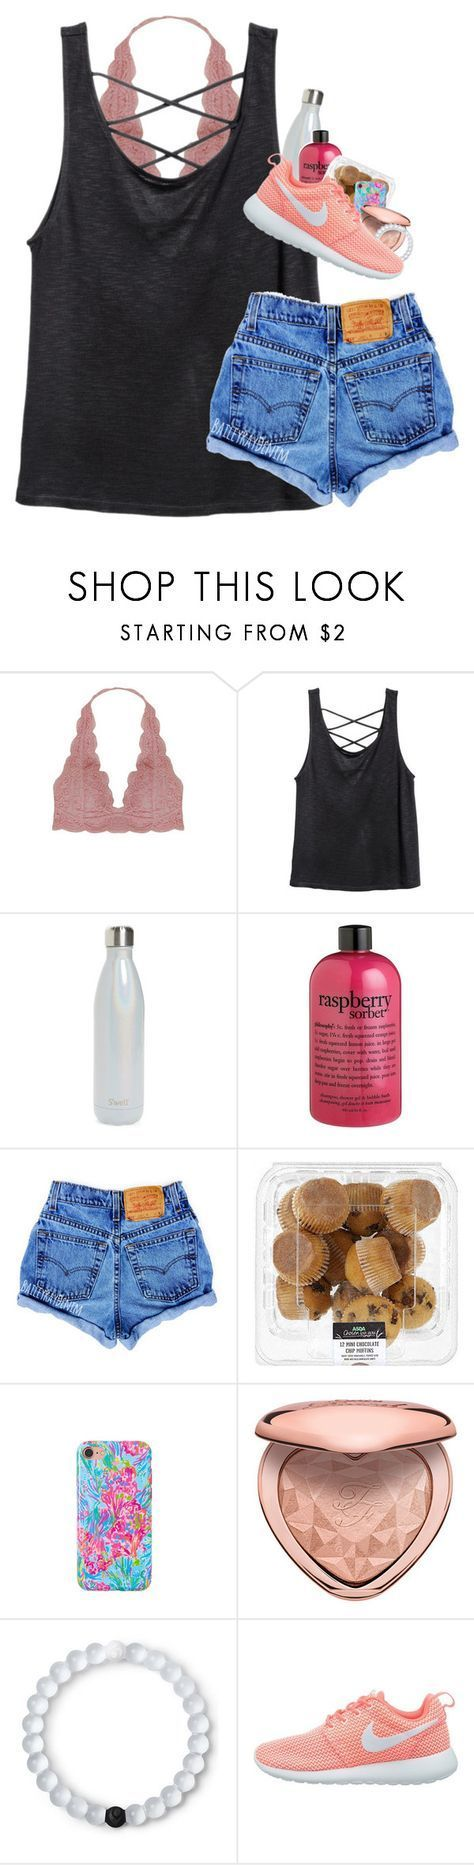 """Just finished babysitting"" by artsydoglovergabs ❤ liked on Polyvore featuring Humble Chic, S'well, philosophy, Lilly Pulitzer, Lokai and NIKE"